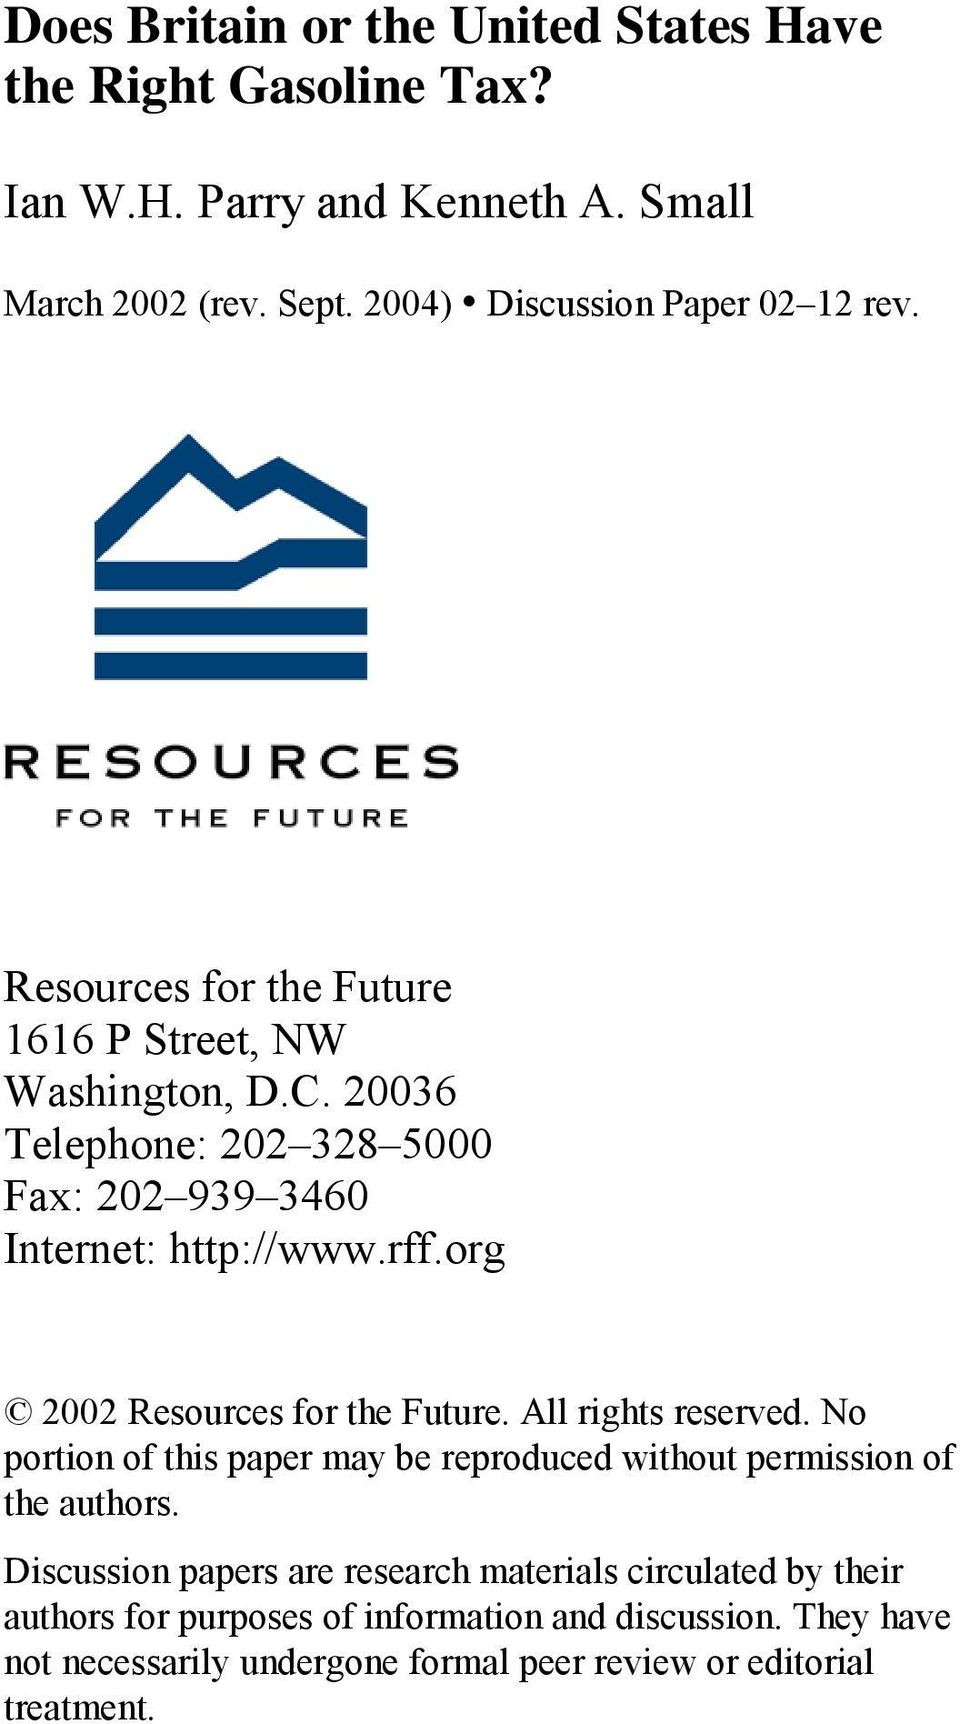 20036 Telephone: 202 328 5000 ax: 202 939 3460 Inerne: hp://www.rff.org 2002 Resources for he uure. All righs reserved.